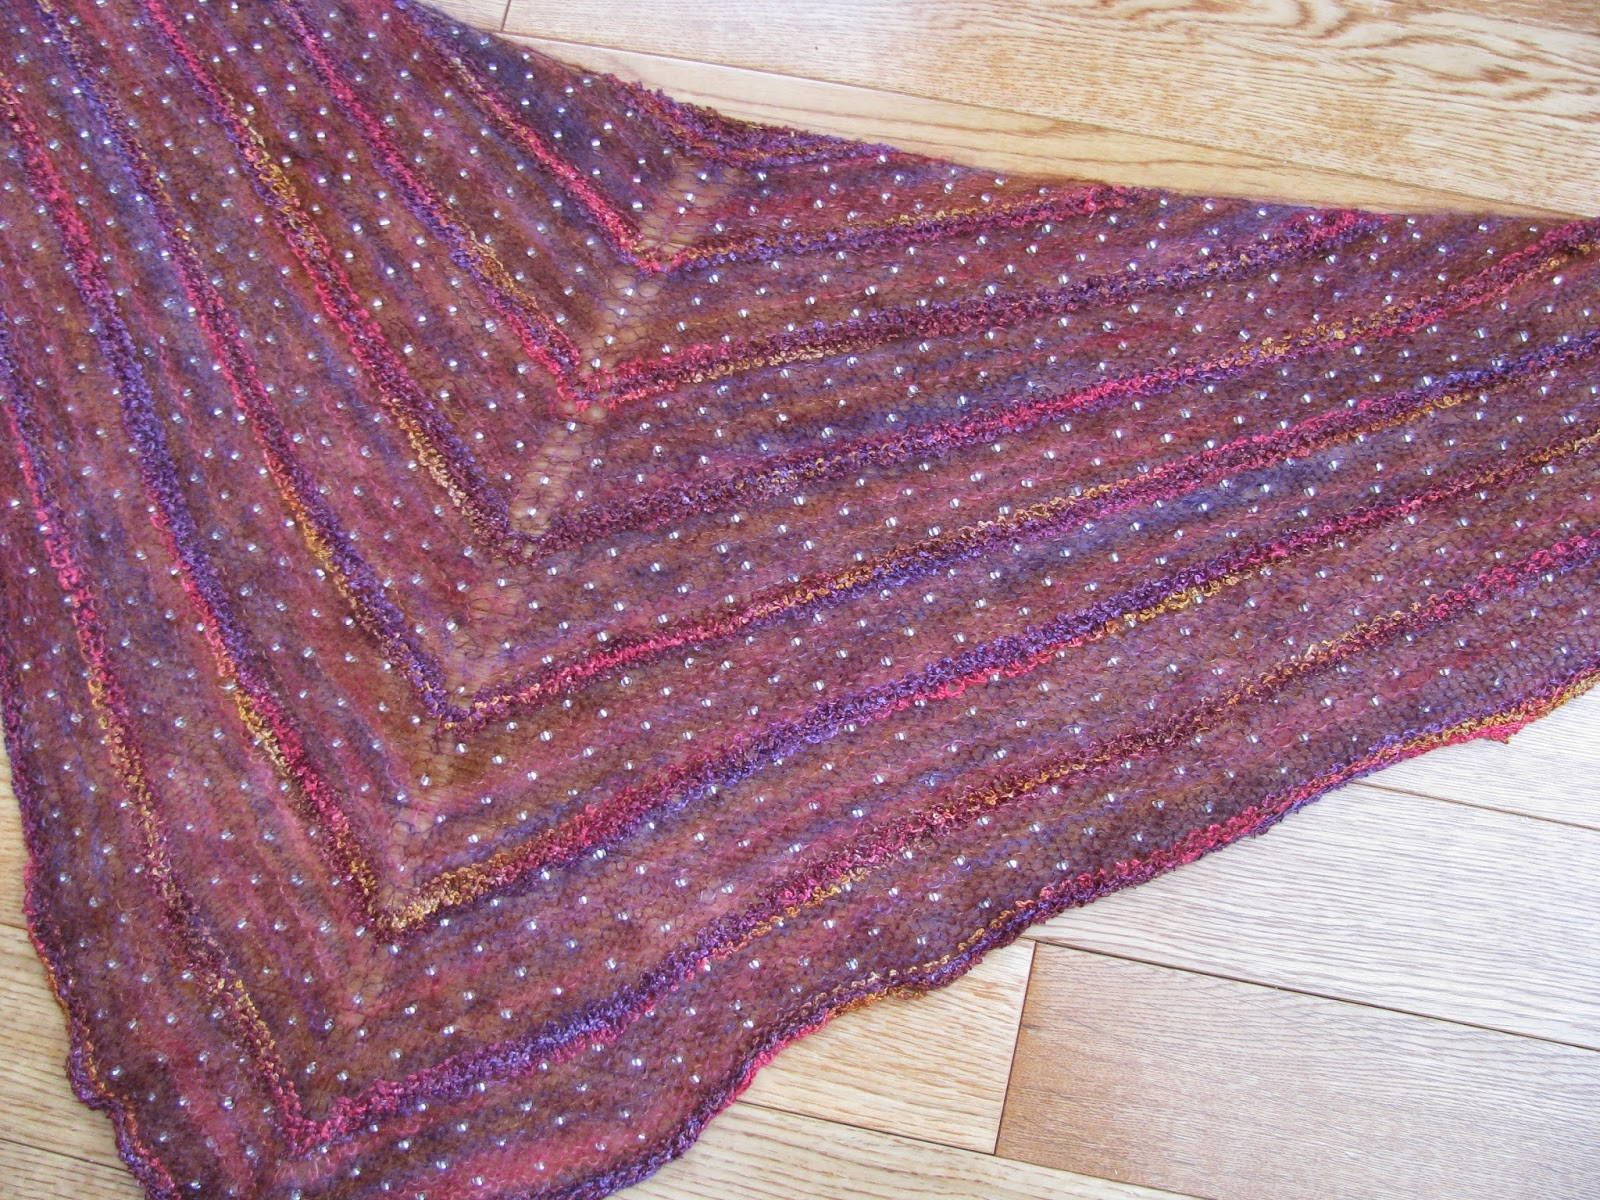 Knitting Patterns For Mohair Scarves : Chris Knits in Niagara: Beaded Mohair Shawl